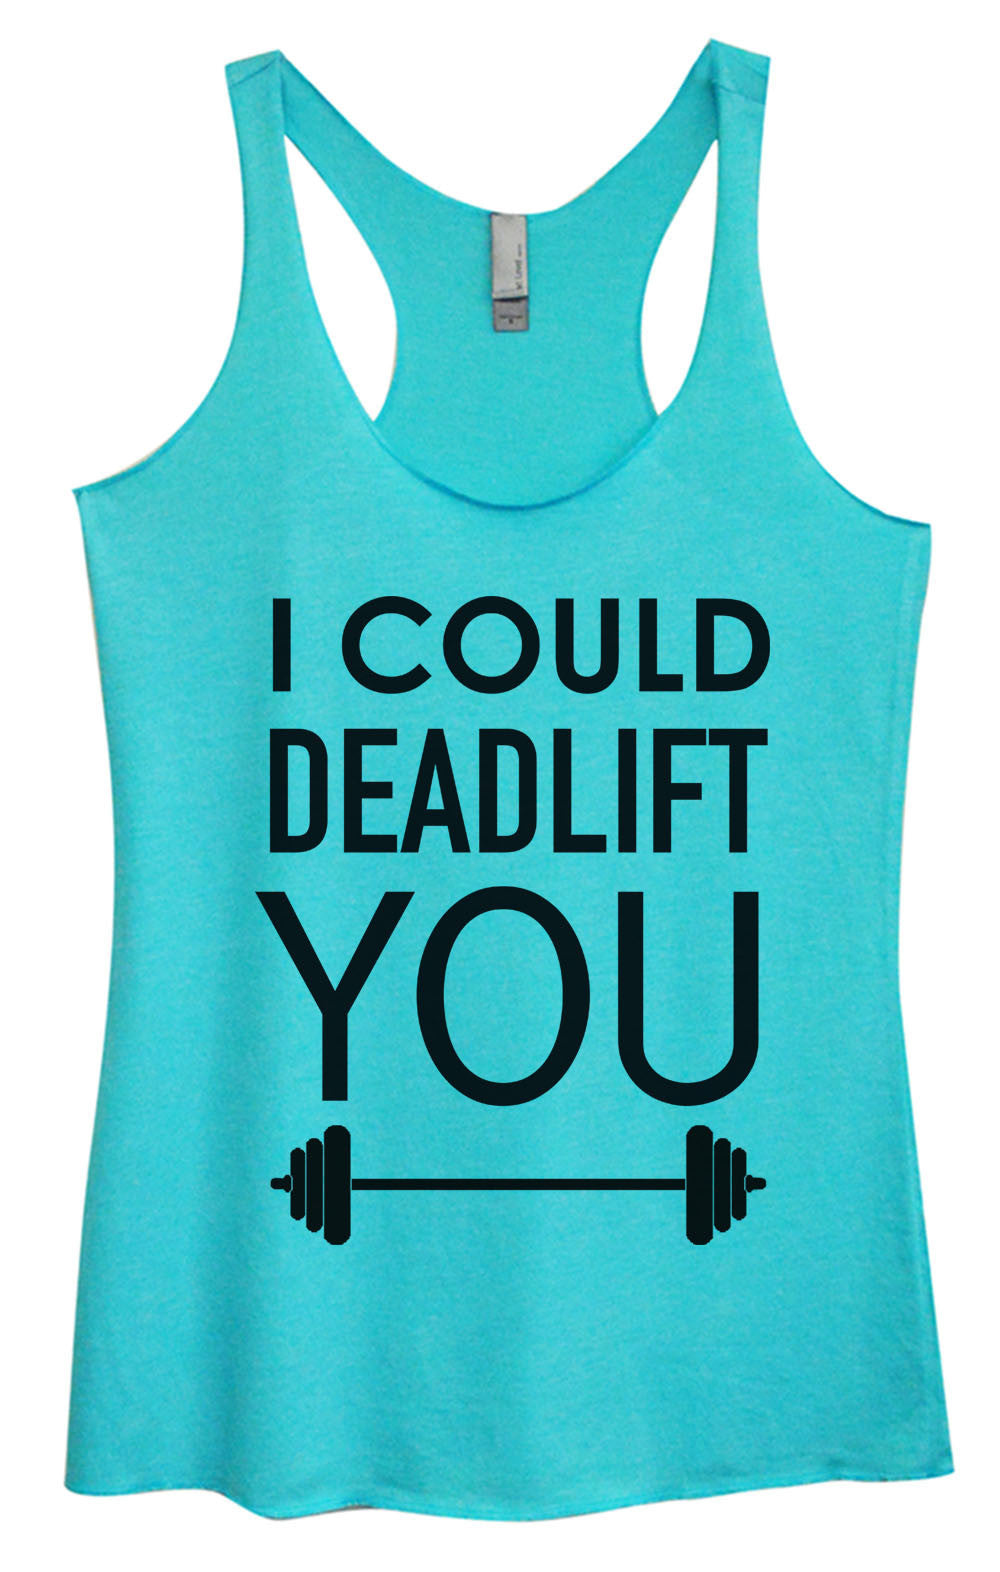 Womens Fashion Triblend Tank Top - I Could Deadlift You - Tri-552 - Funny Shirts Tank Tops Burnouts and Triblends  - 4